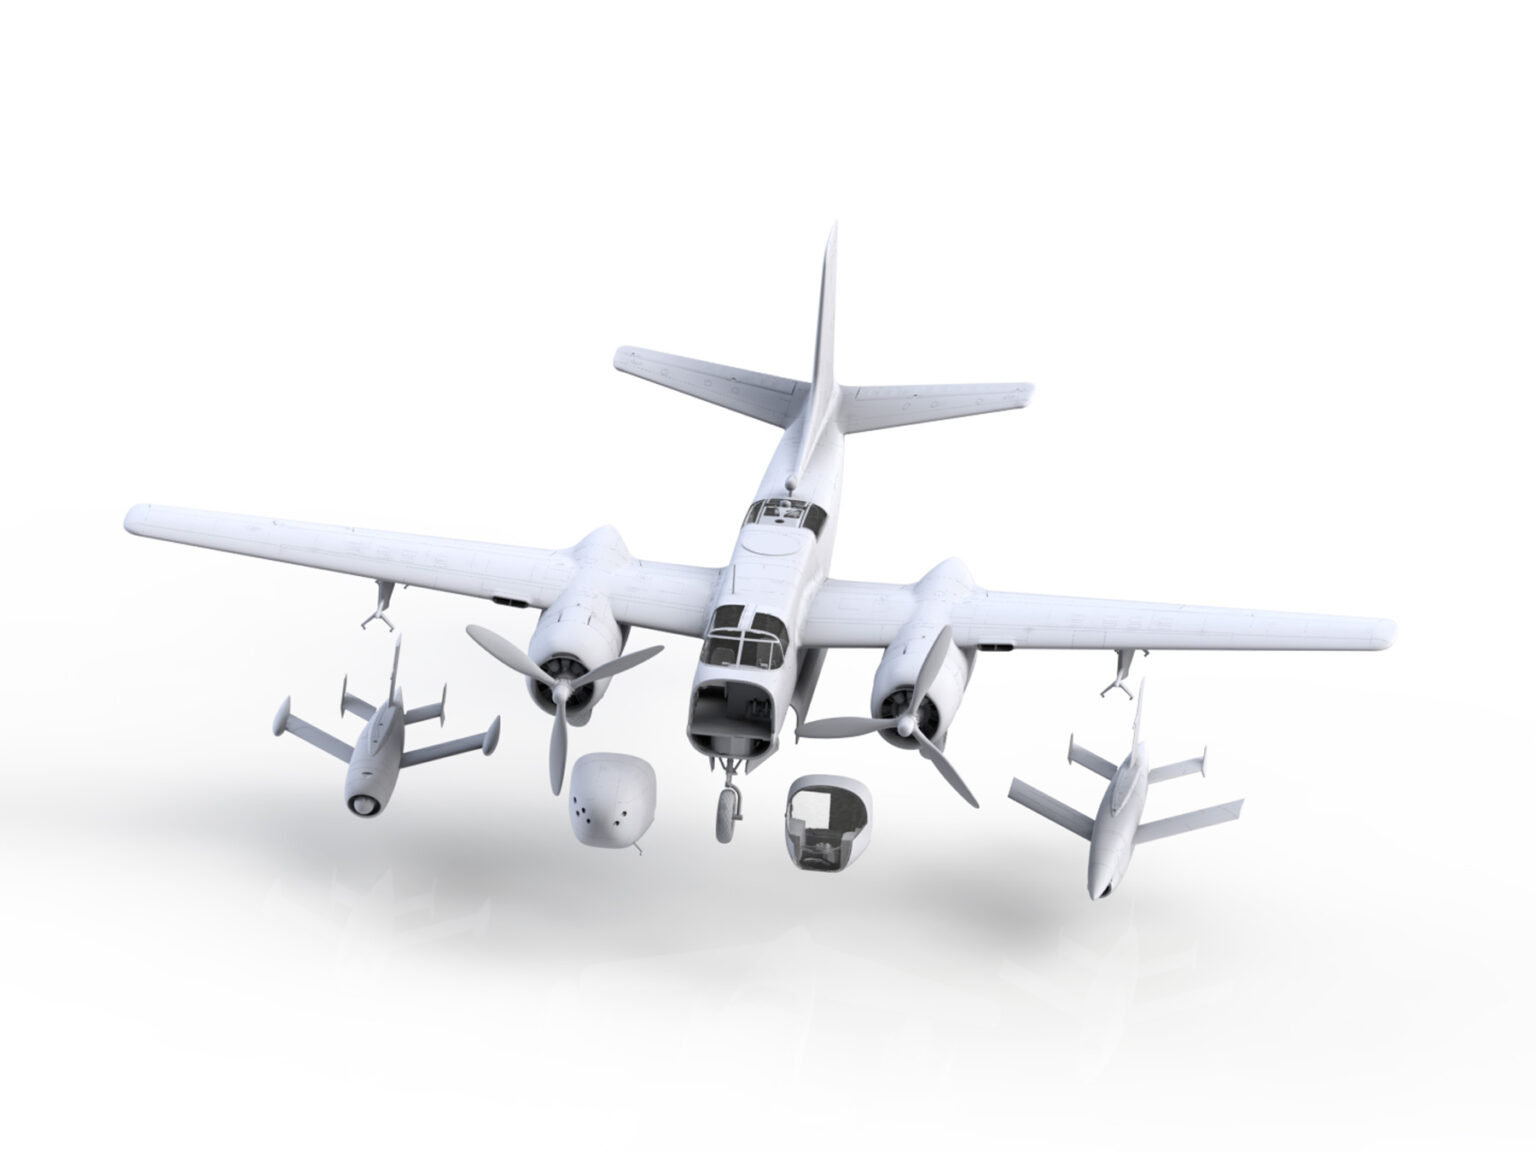 48286_db-26b.c_with_q-2-drones_renders_cropped_icm-1536x1152